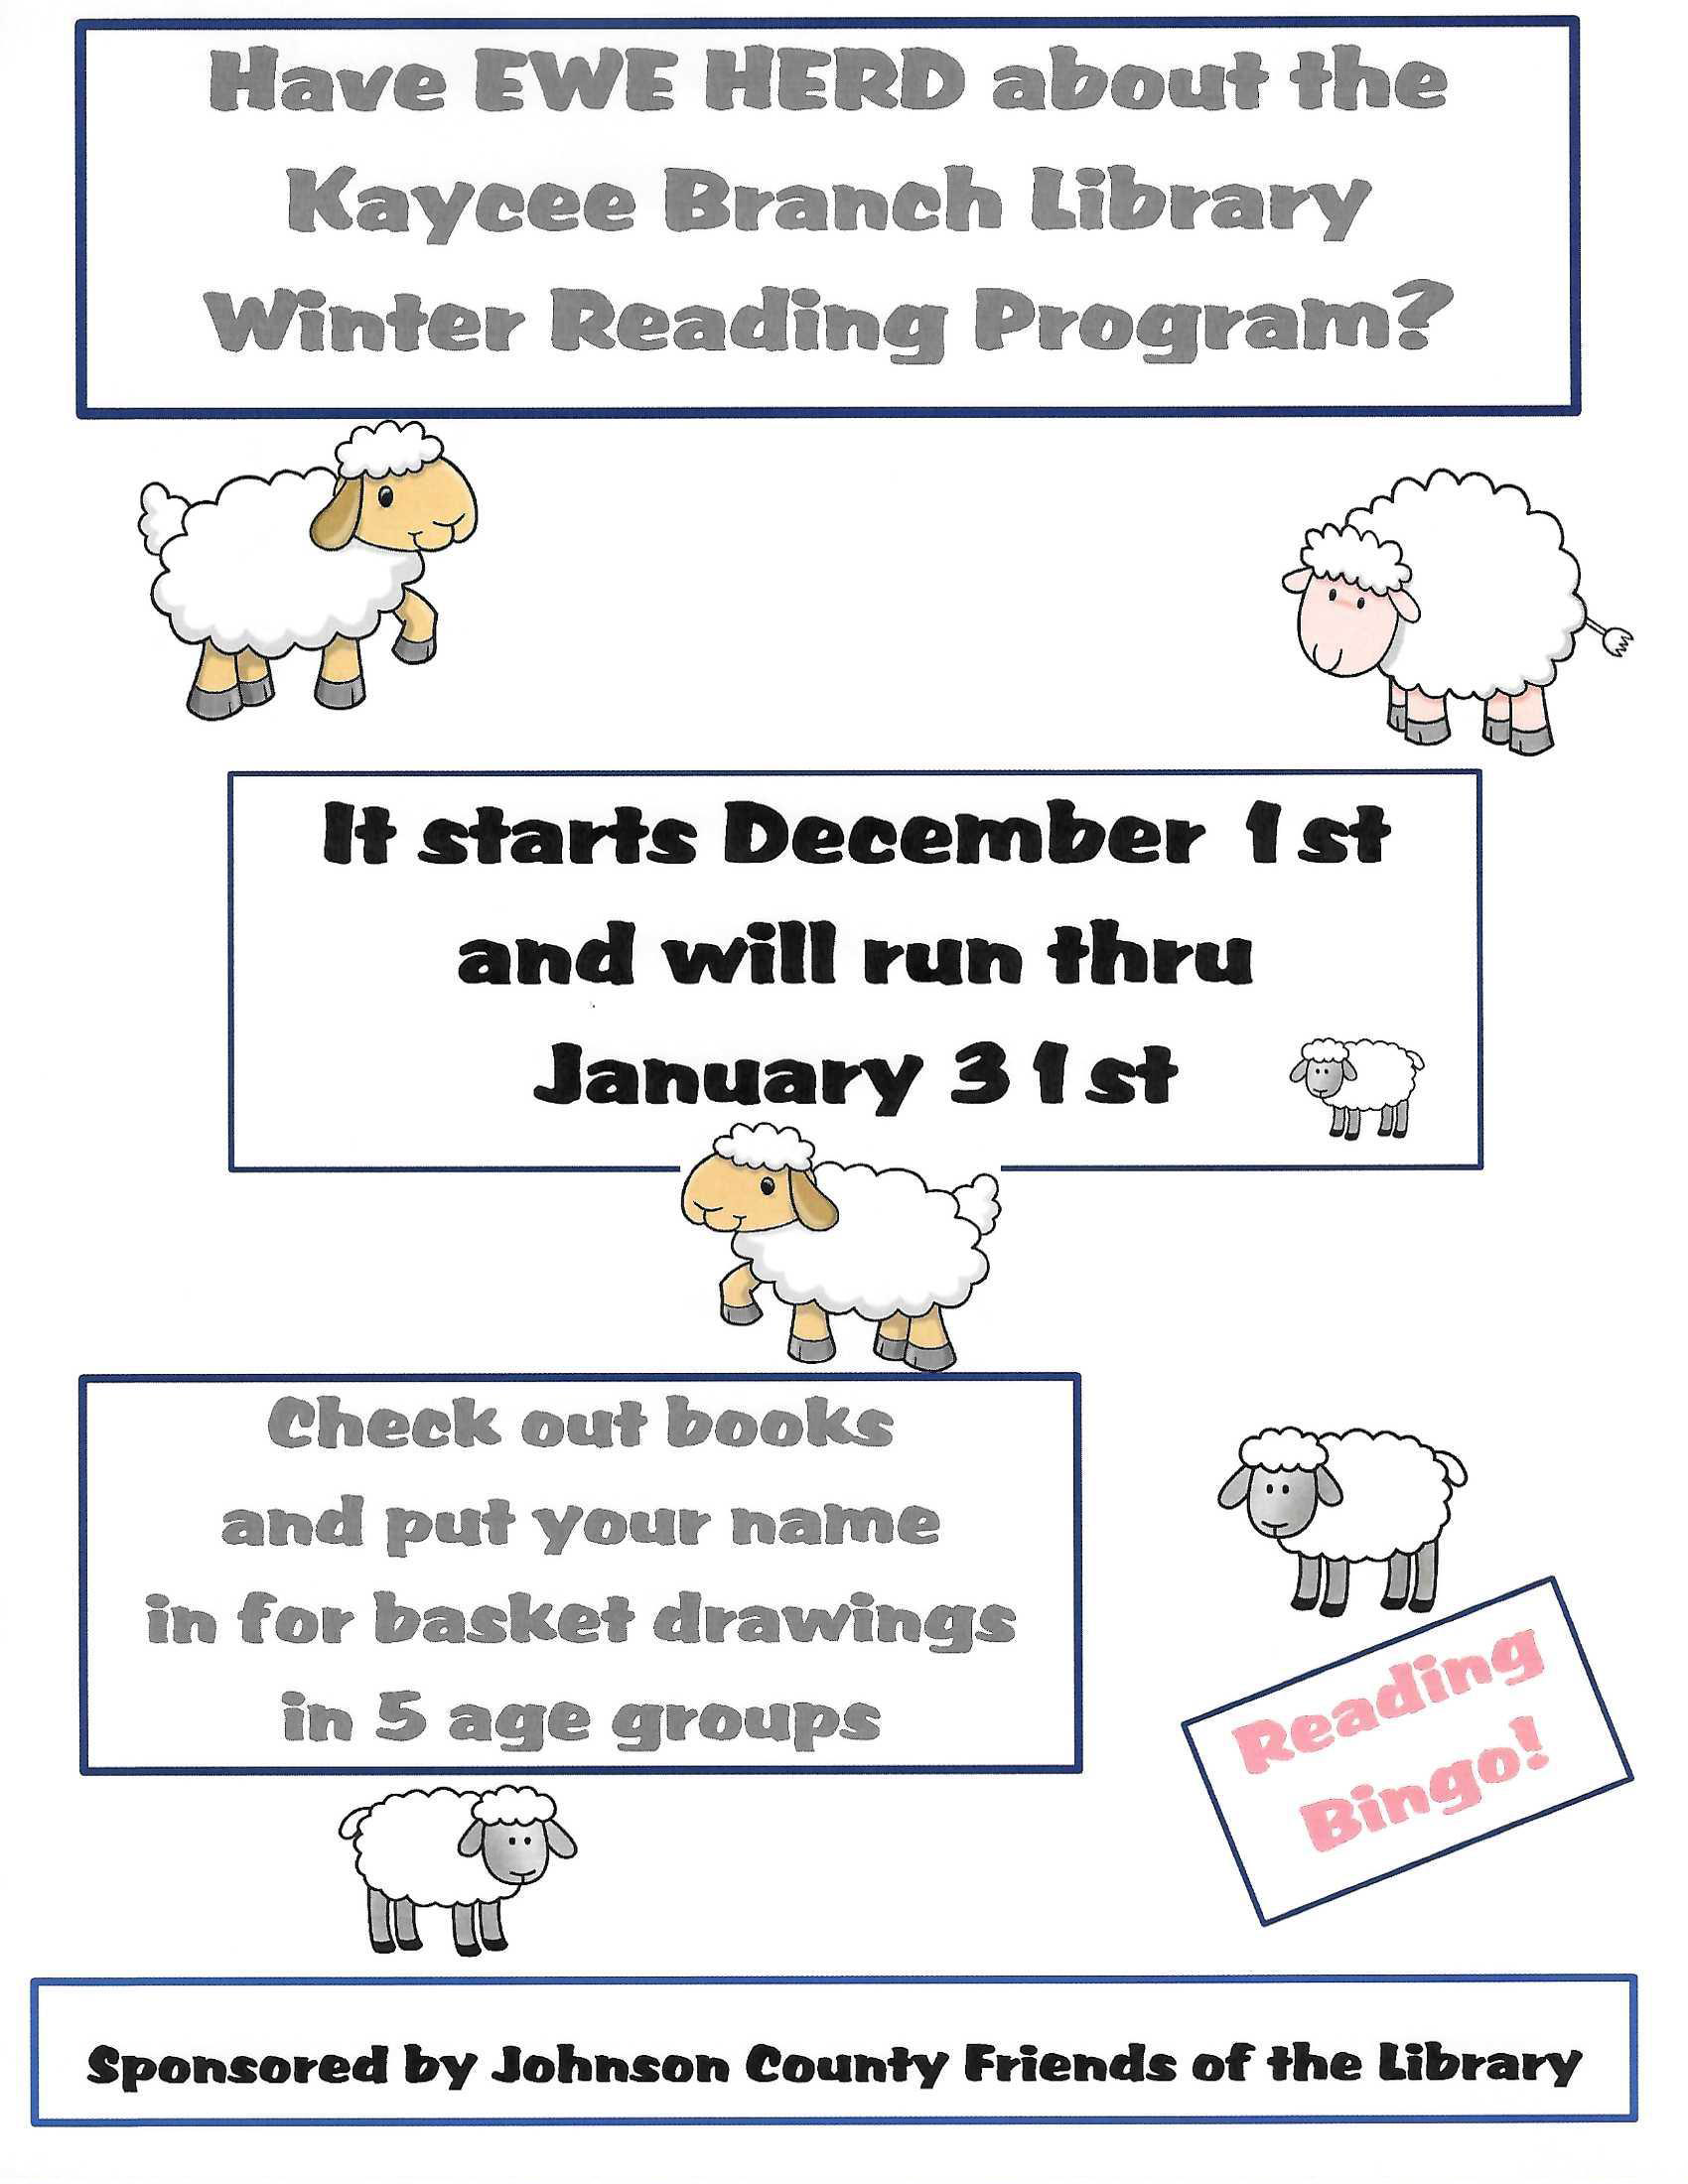 Winter Reading Program Image